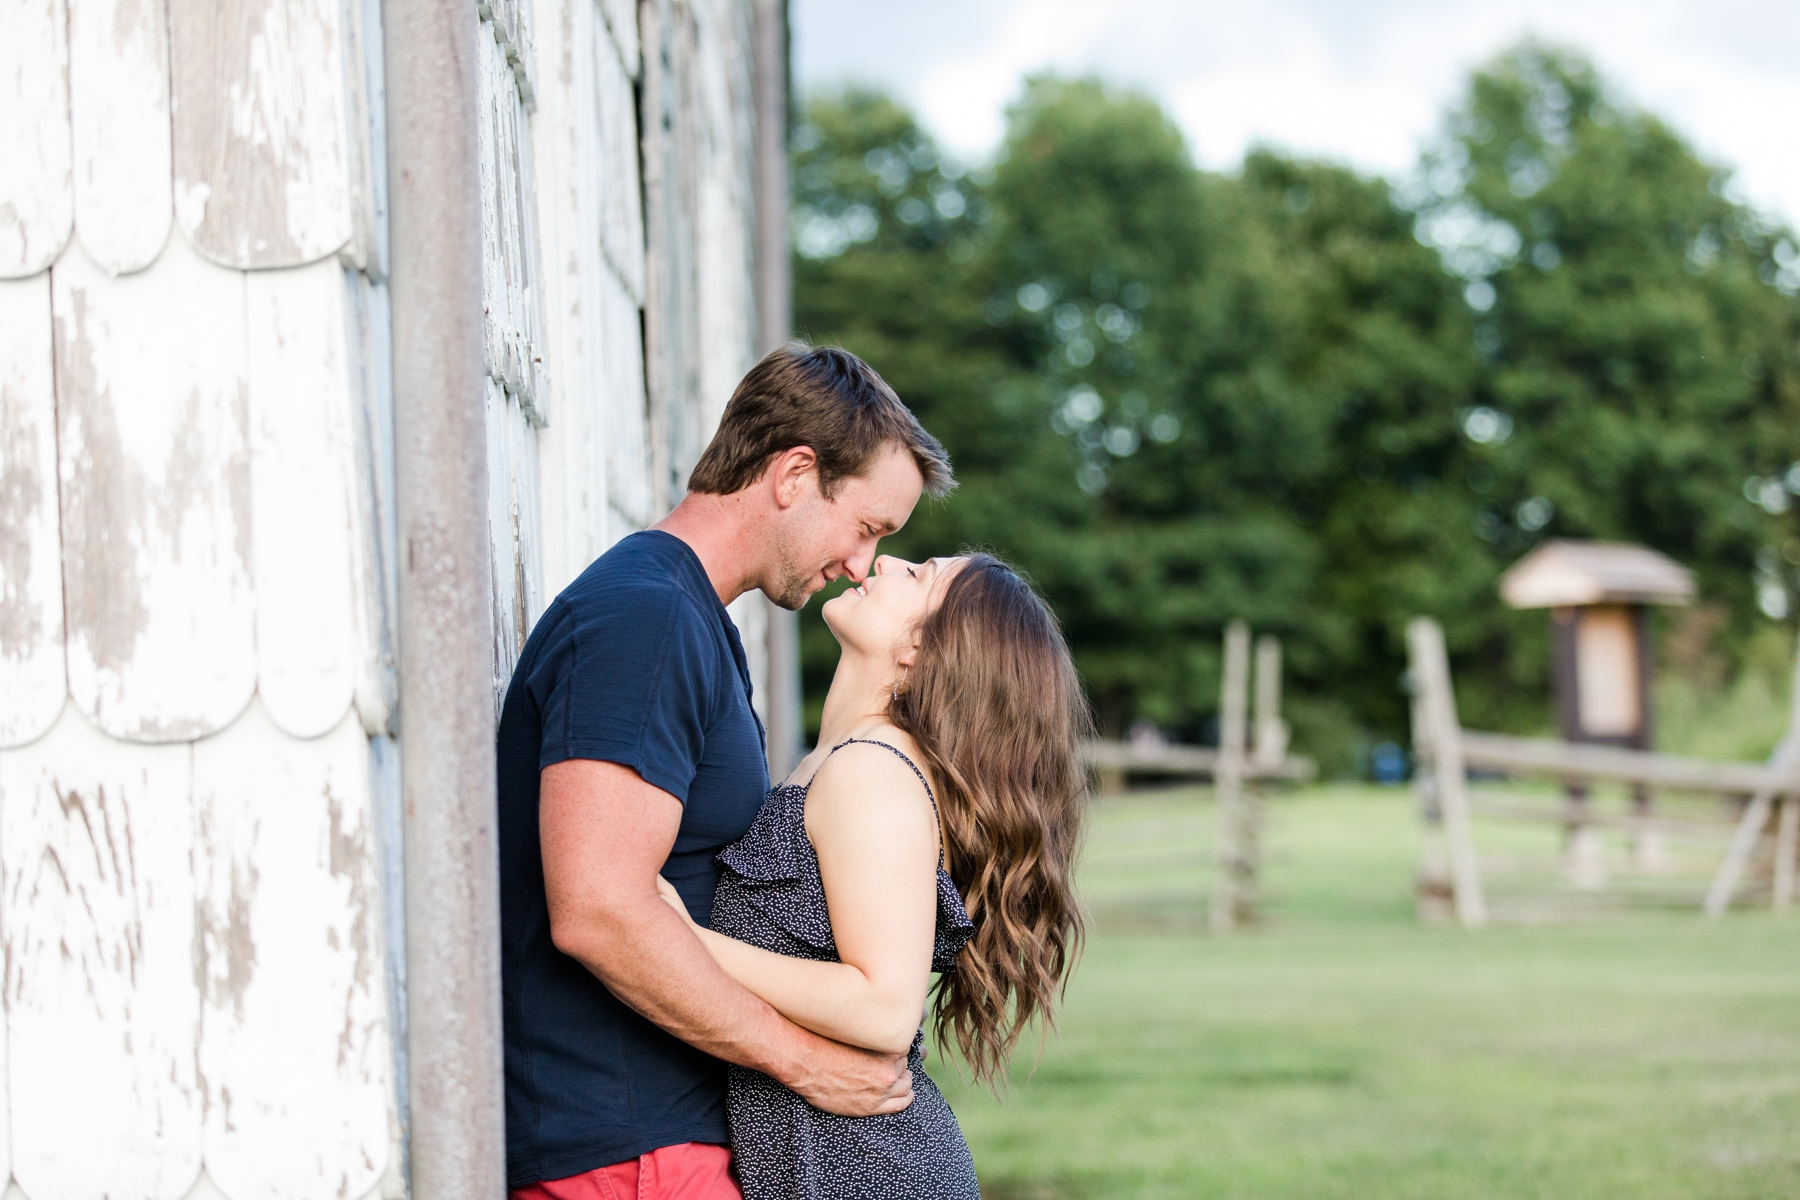 Allison + Jon Engagement Session at the historic Craig House in Freehold